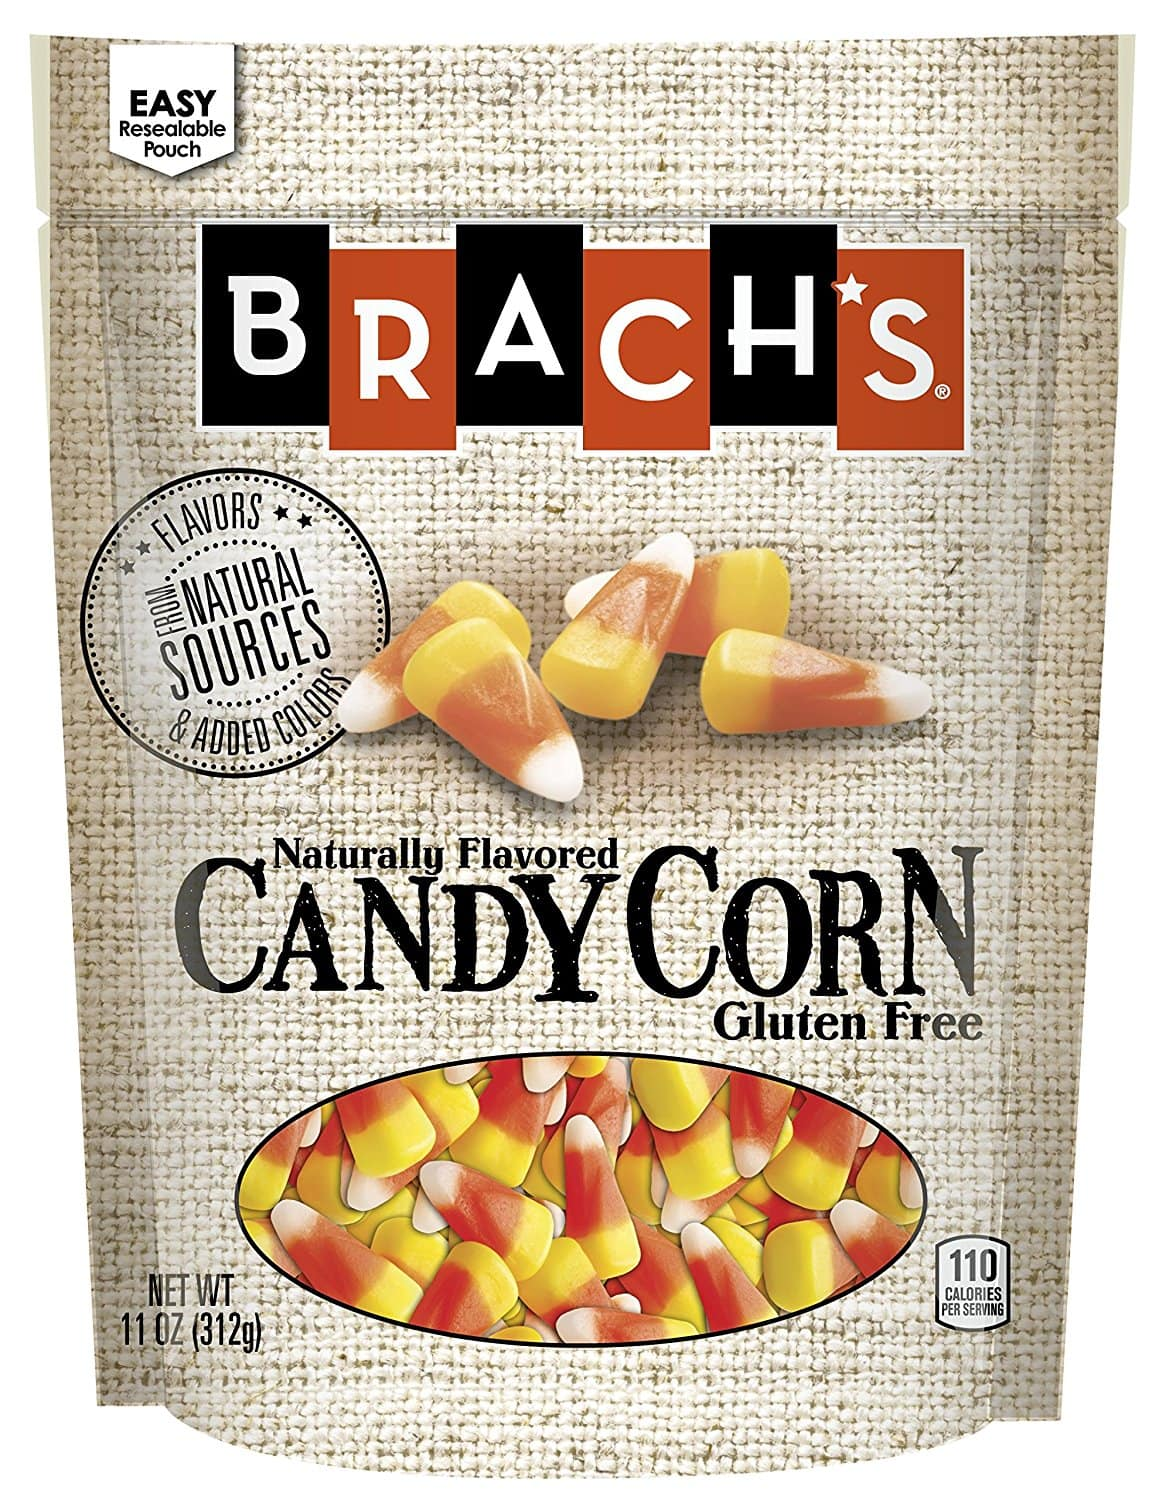 Brach's Natural Sources Candy Corn, 11 Ounce (Pack of 4) $3.57 Add on item@amazon